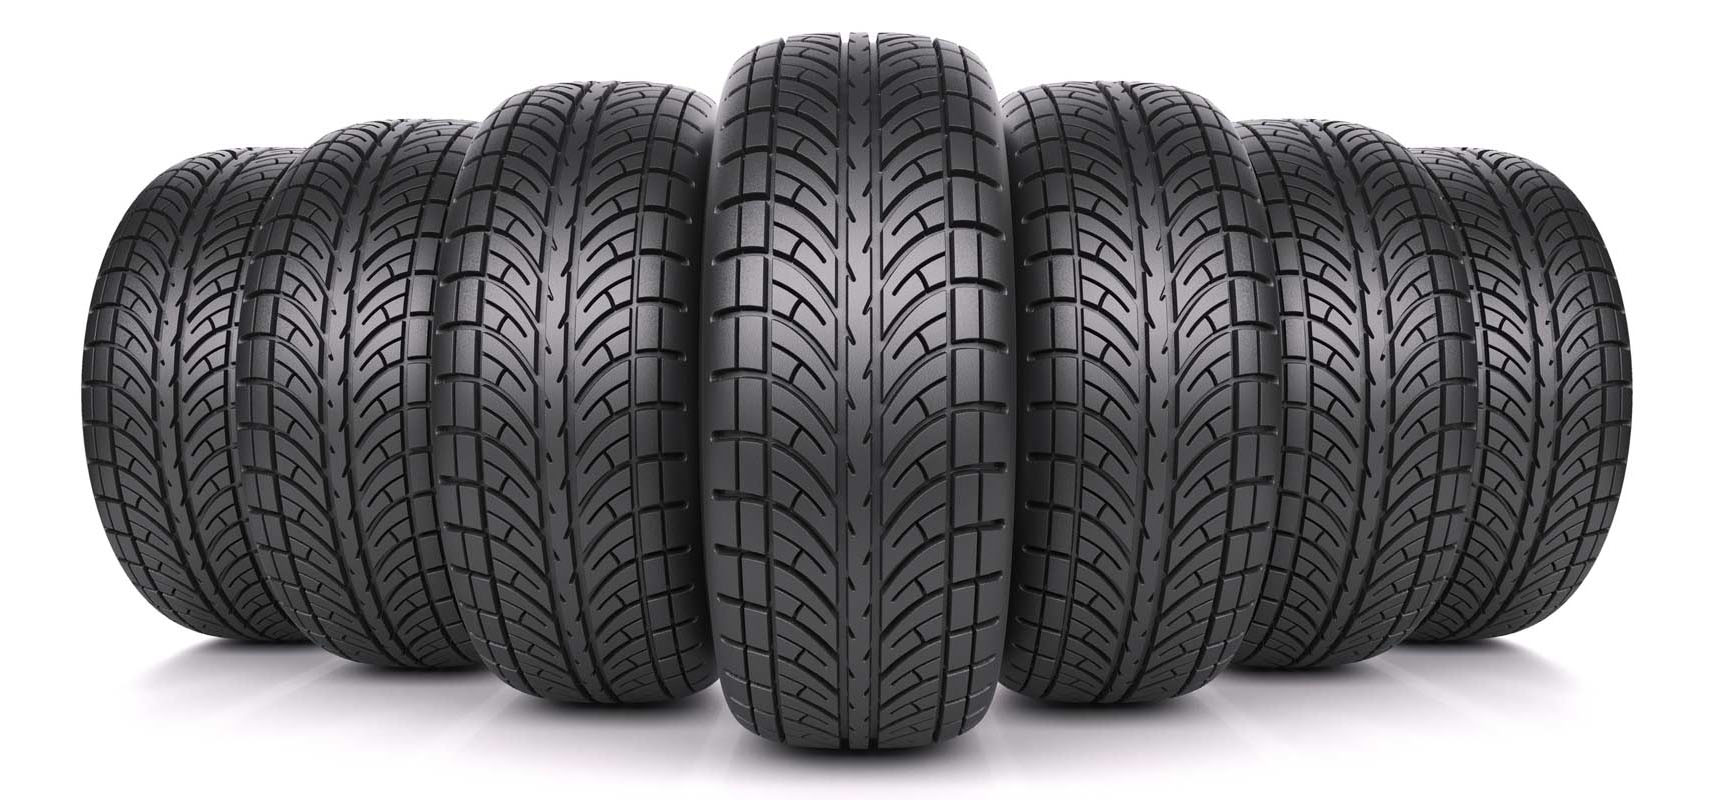 barwon-tyre-and-auto-centre-car-tyres-in-row-1920x800.jpg